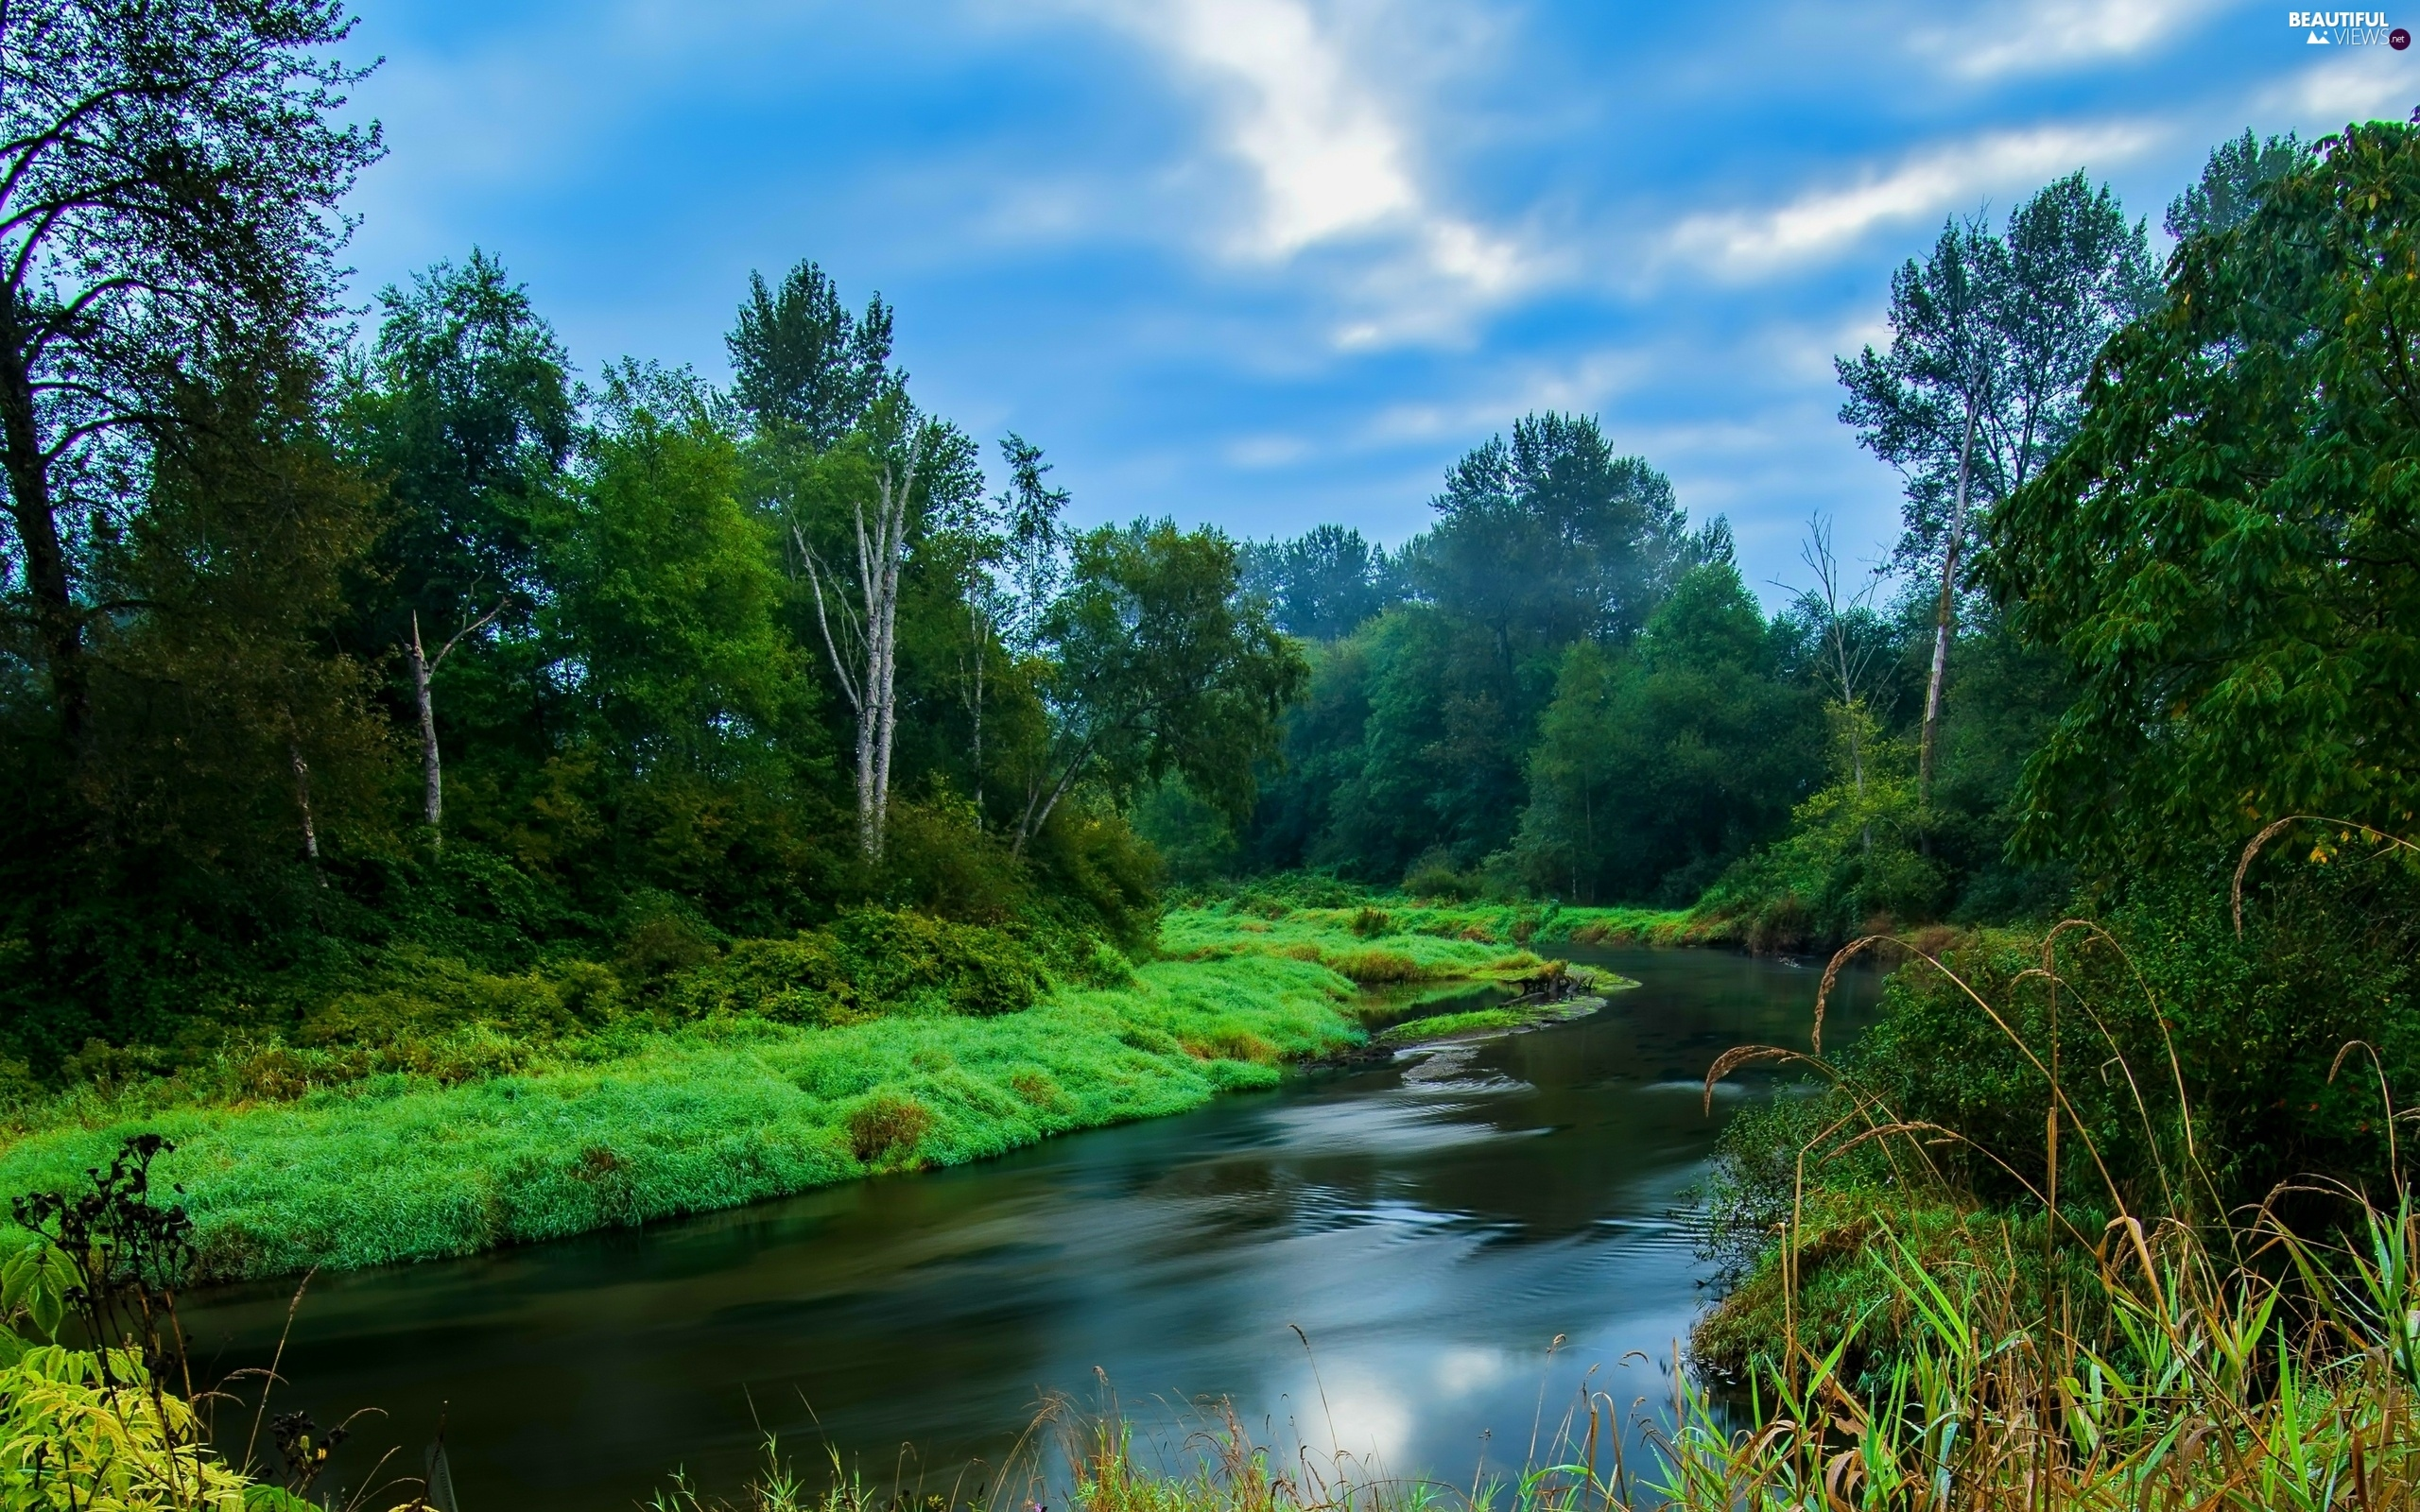 River, grass, clouds, forest